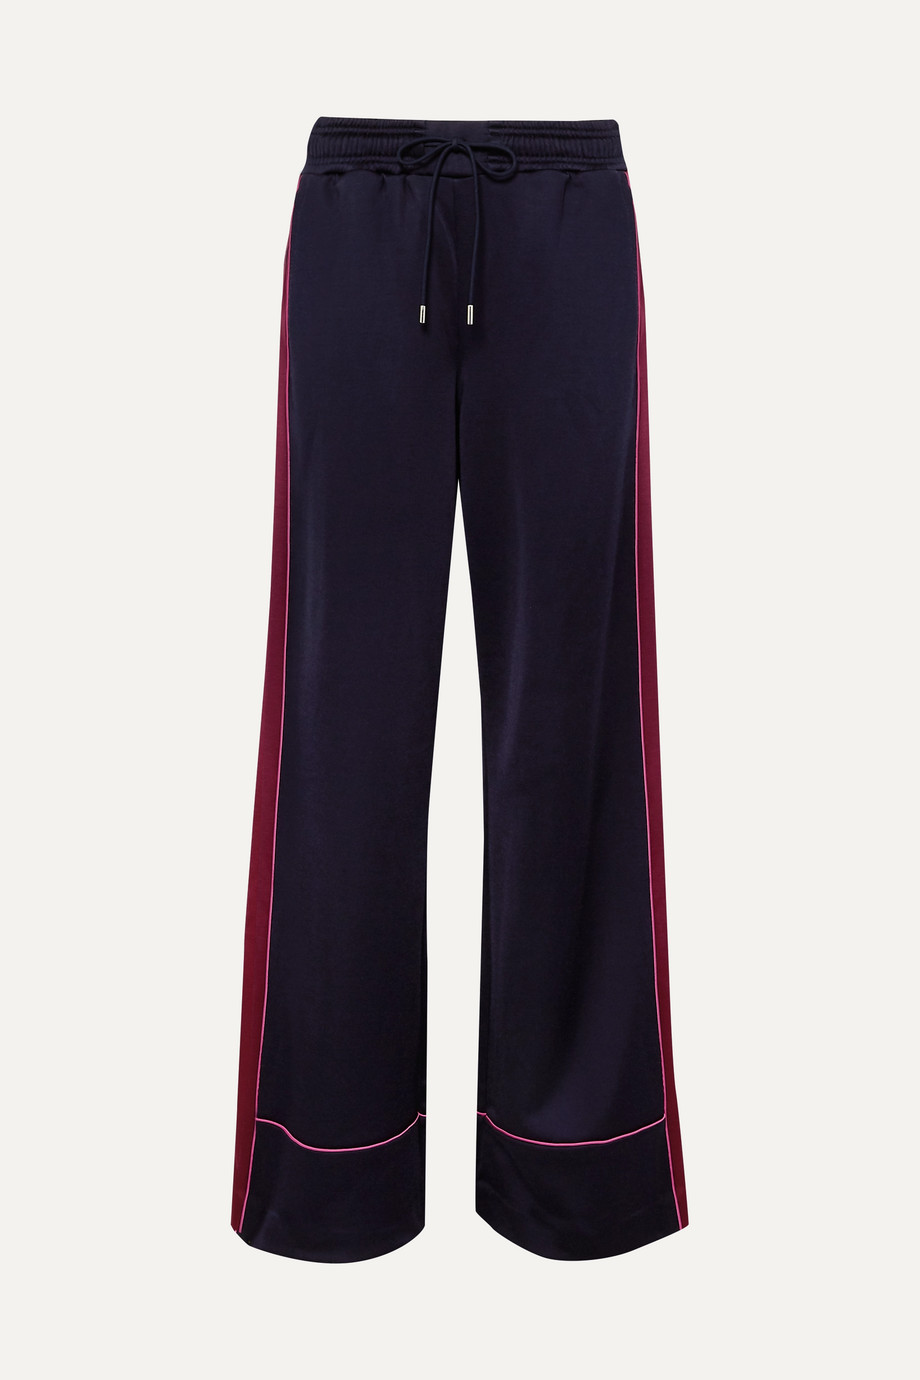 Ninety Percent Striped satin-jersey track pants